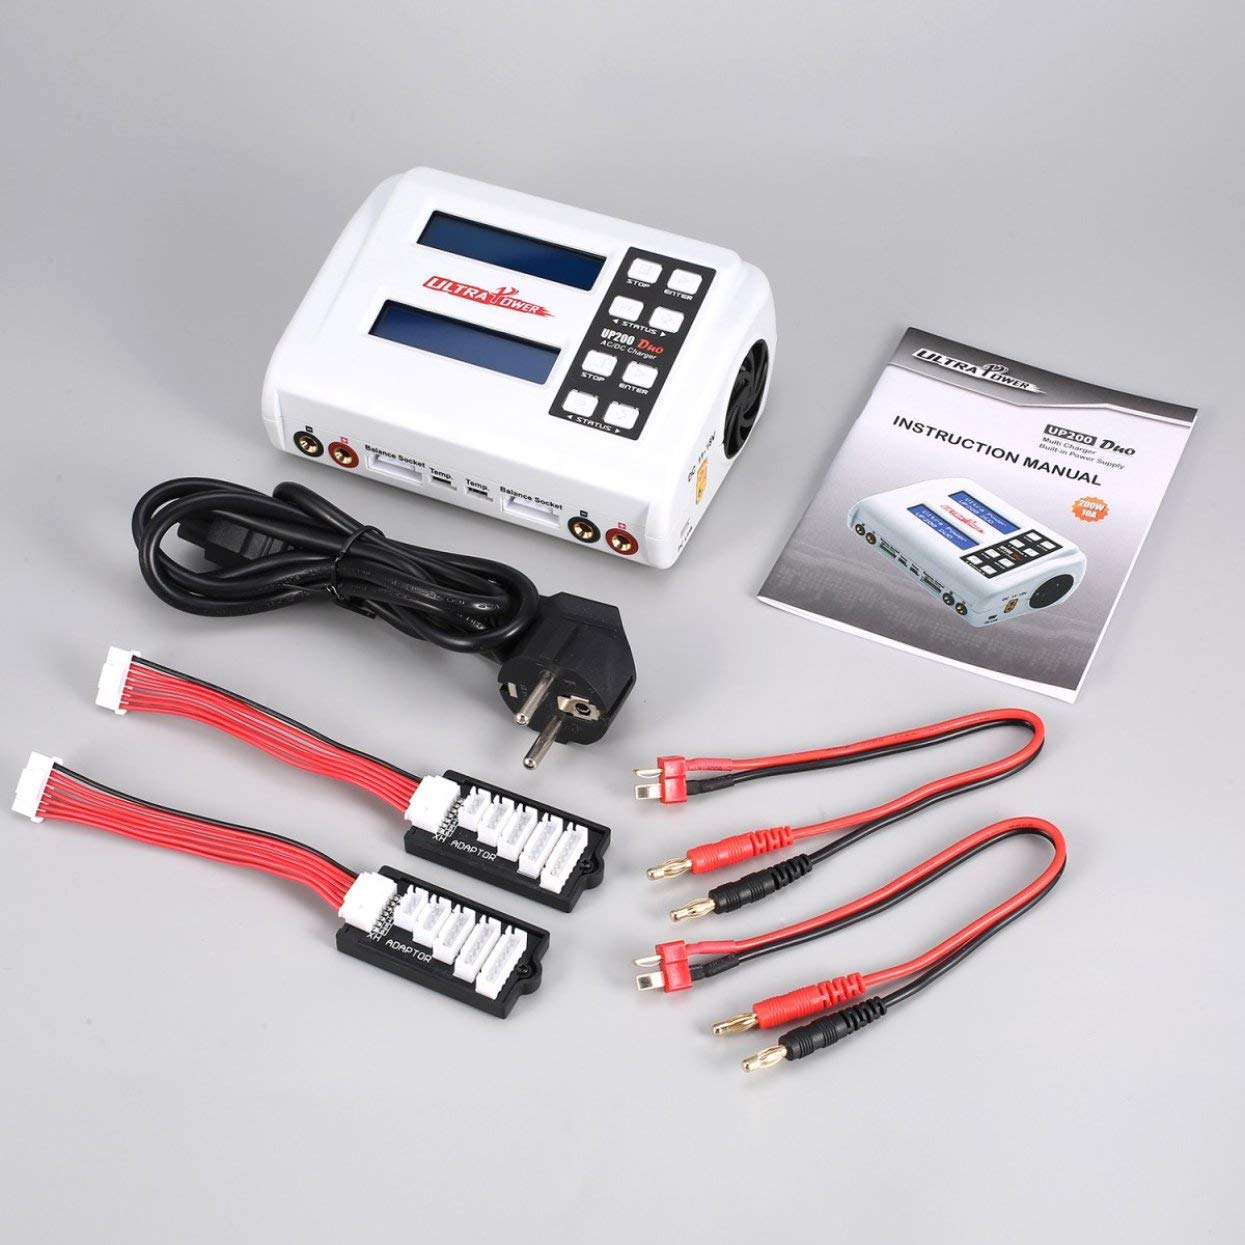 Tellaboull for UP200 Duo 200W 10A AC/DC-Batterieladegerät/Downloader für LiPo Life Lilon LiHVNiMh RC-Batterie